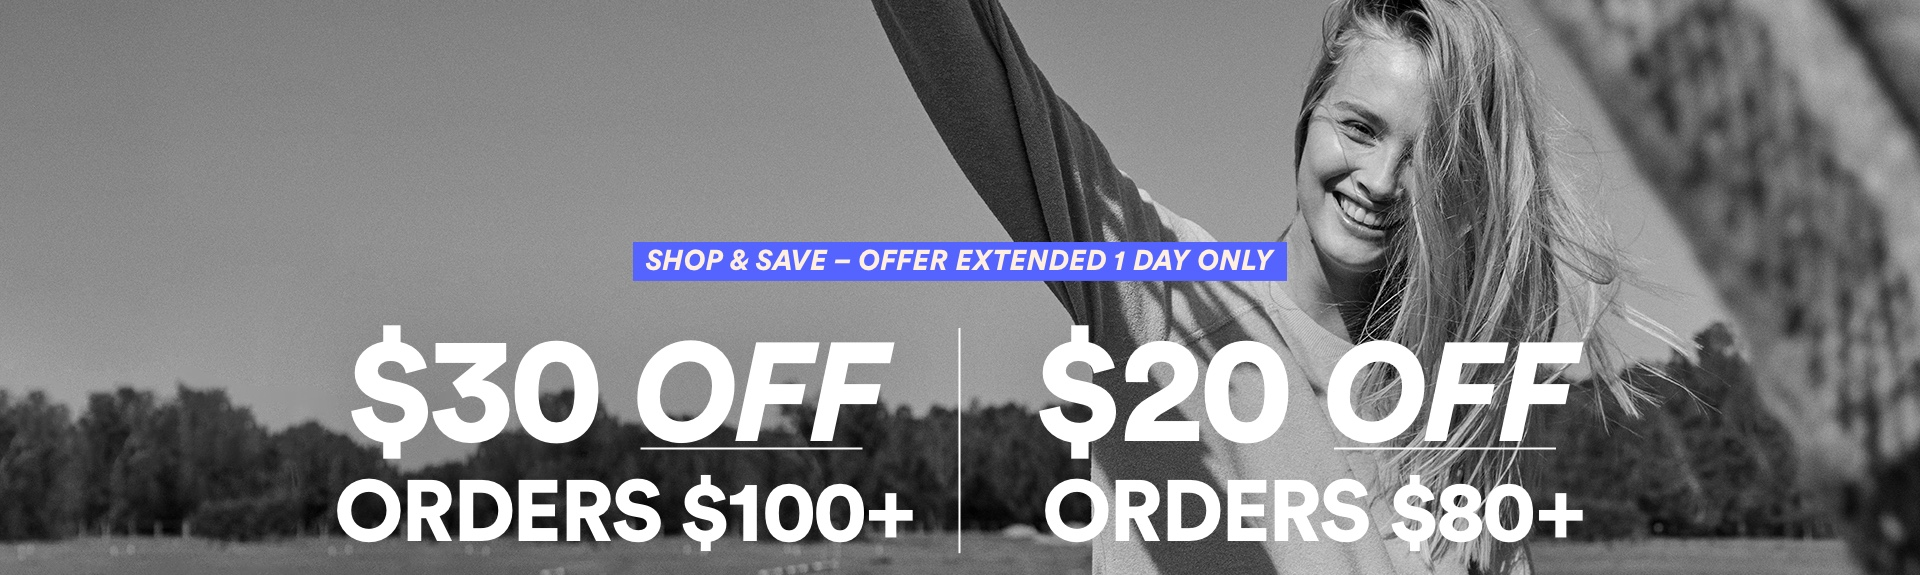 Shop & Save. Offer Extended 1 Day Only. Click to Shop.